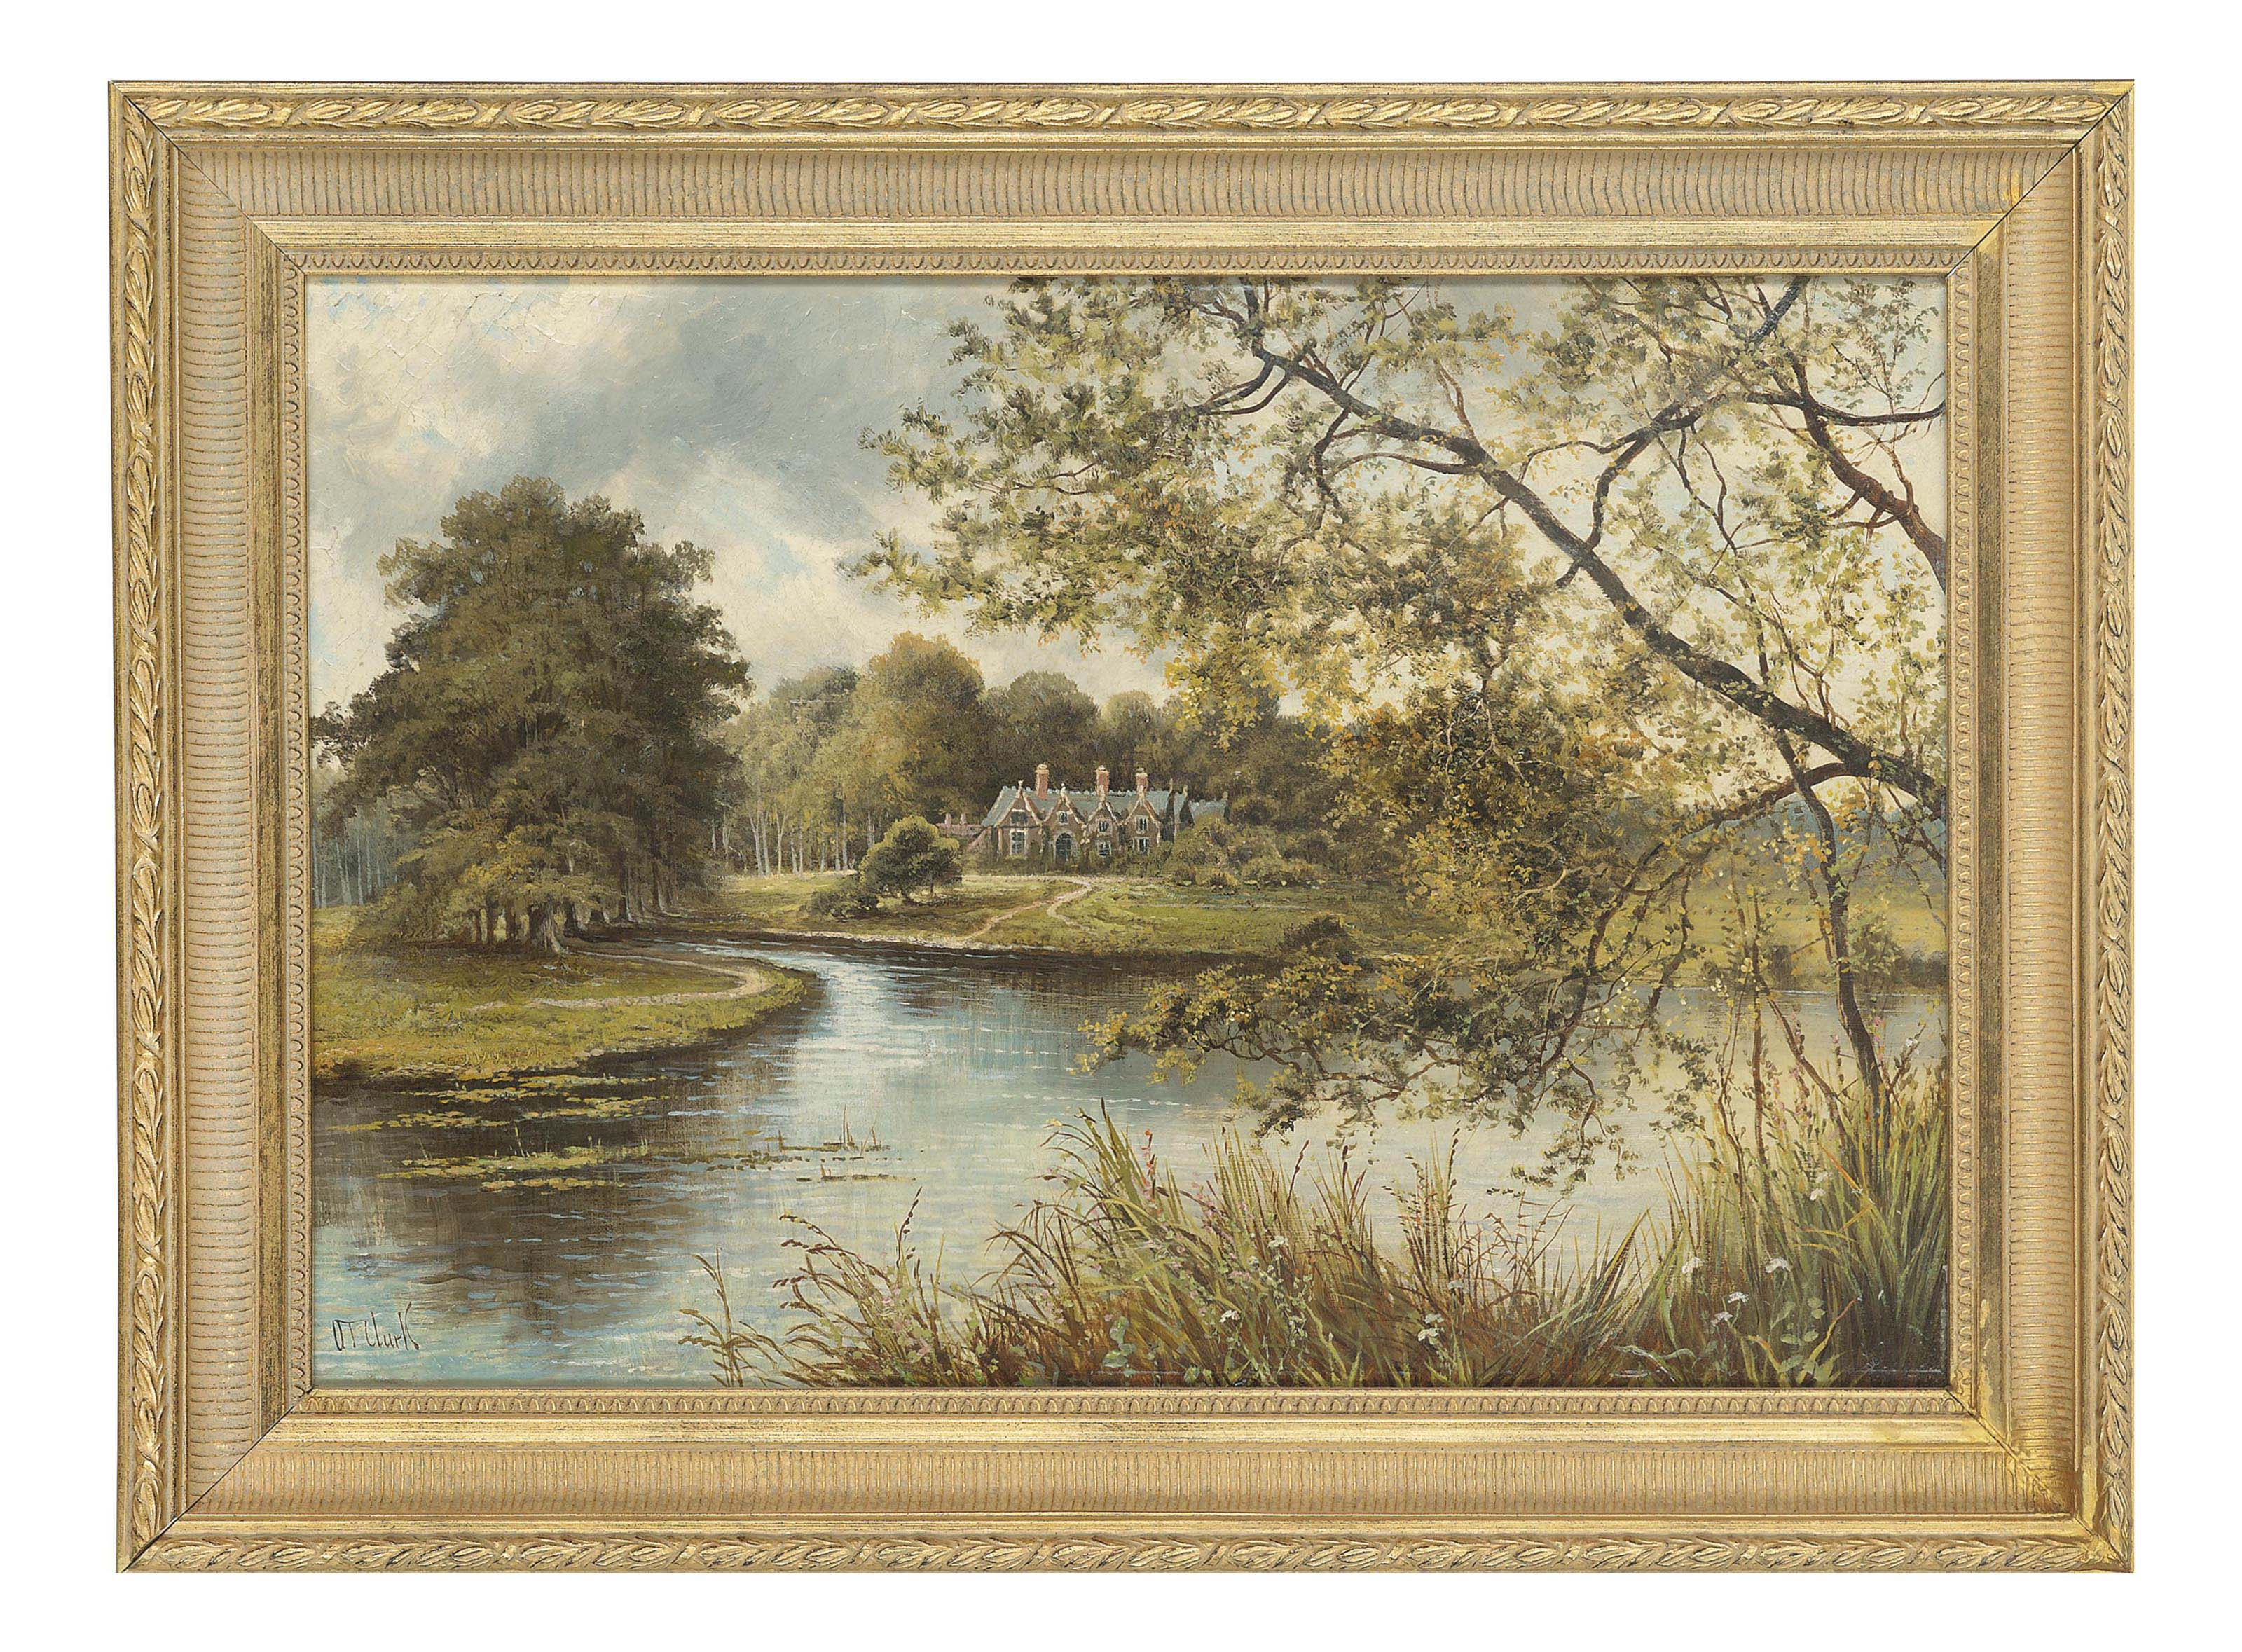 Cottage, thought to be at Sandringham